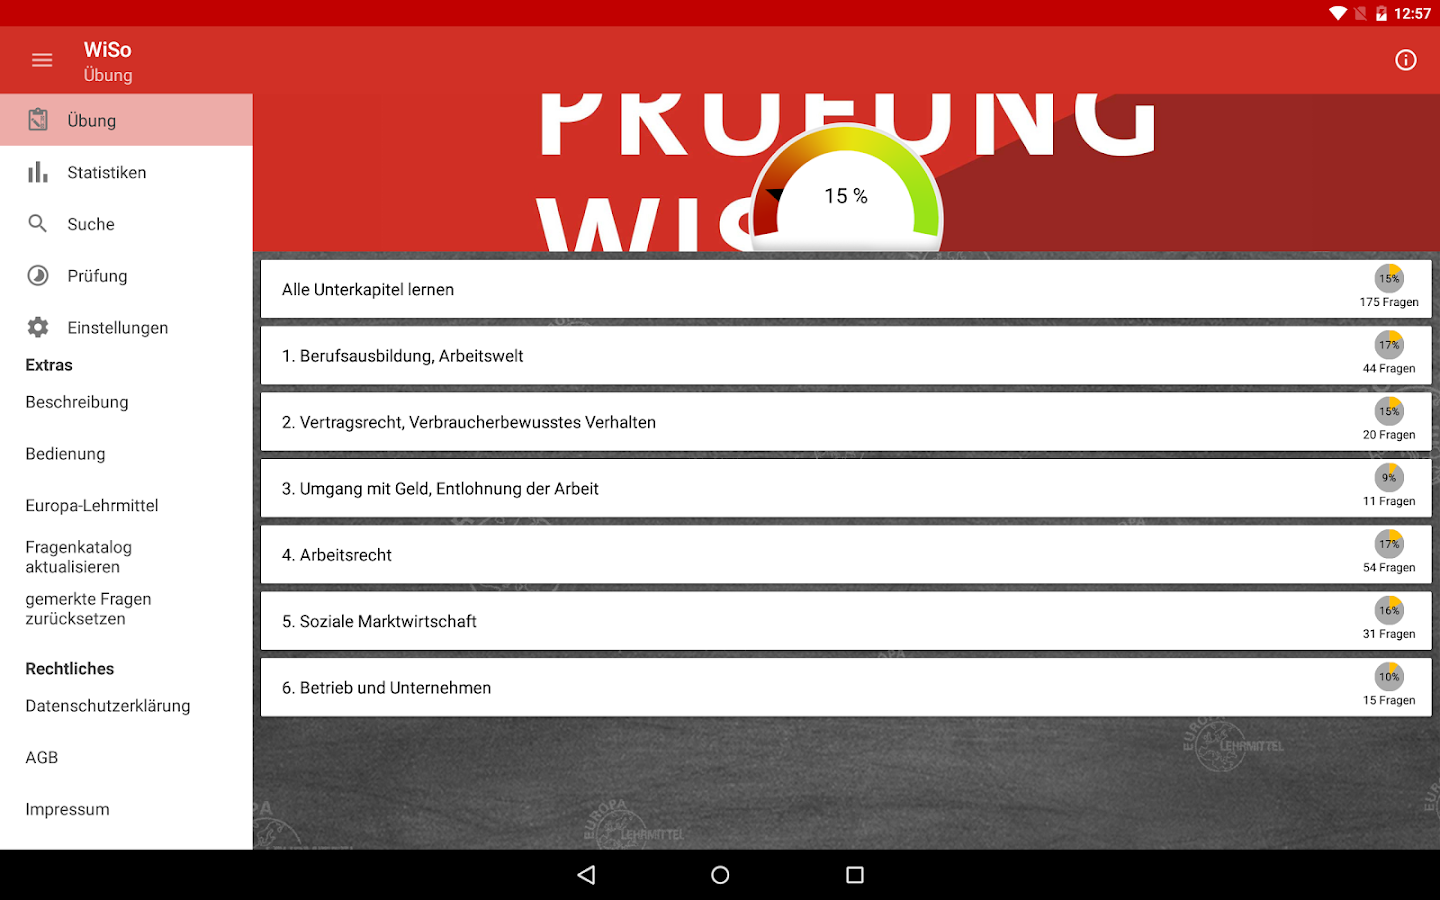 Prüfung WiSo 2.0 APK Download - Android Education Apps